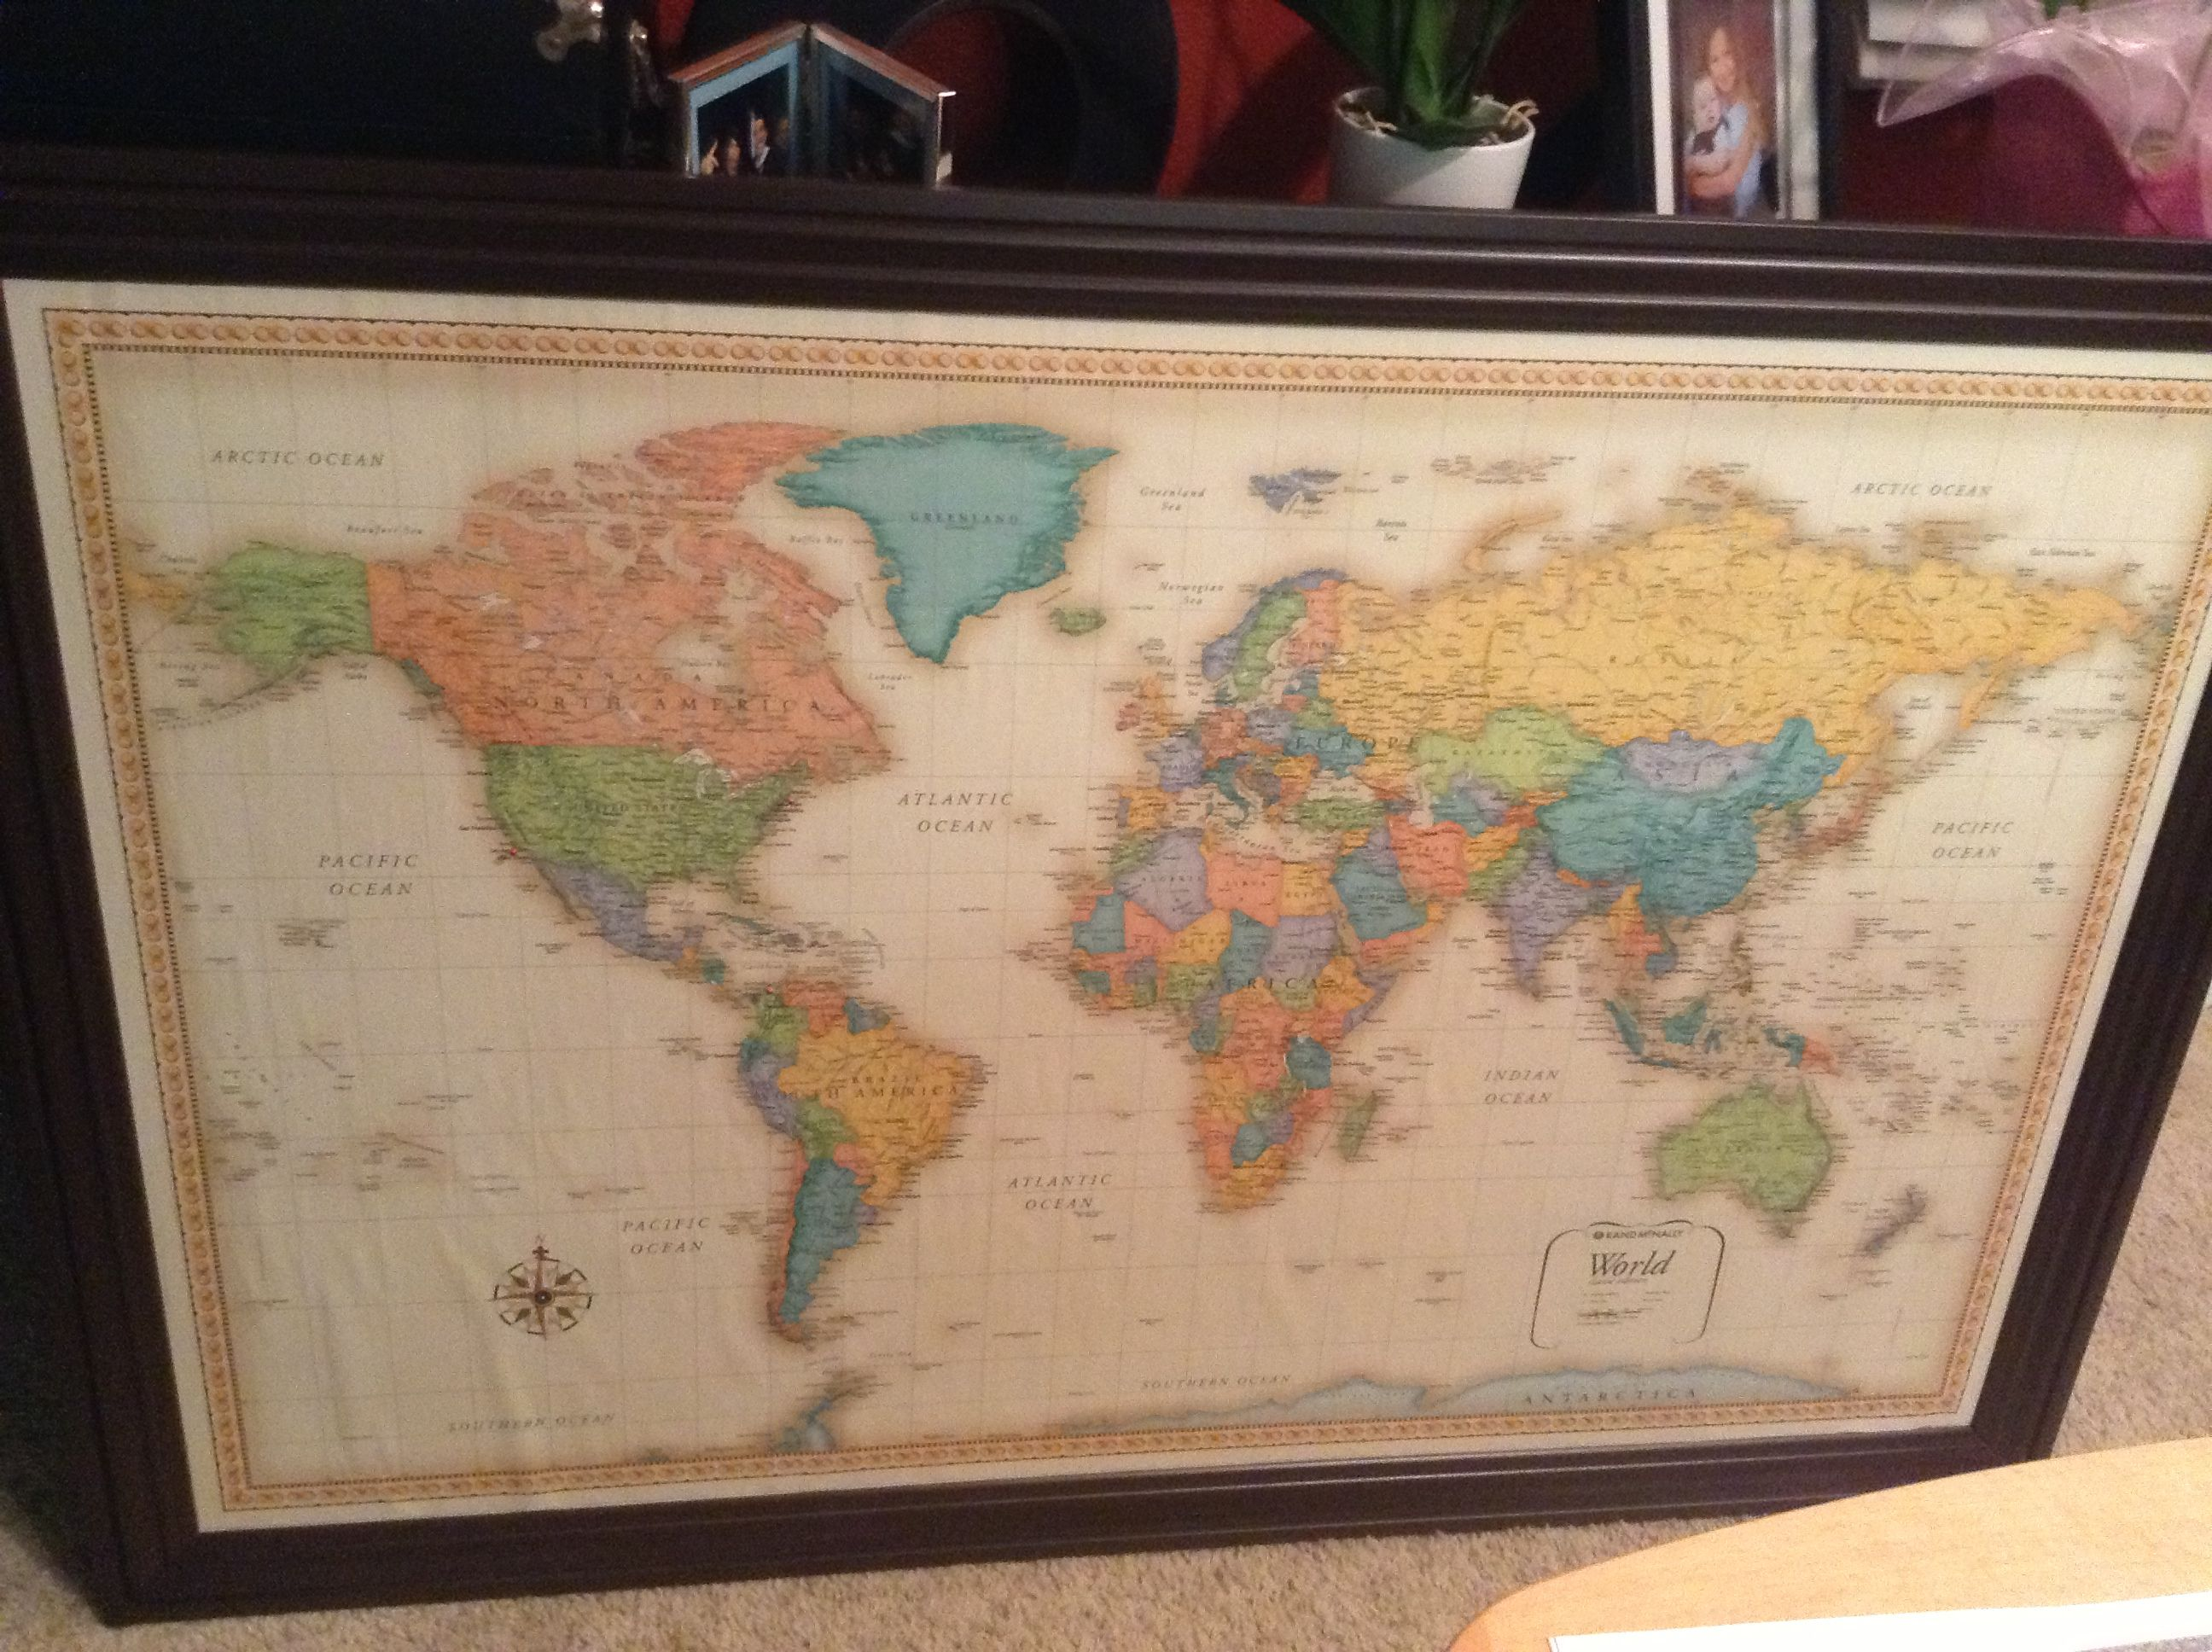 50x32 map, foam core, moulding | home | Pinterest | Playrooms